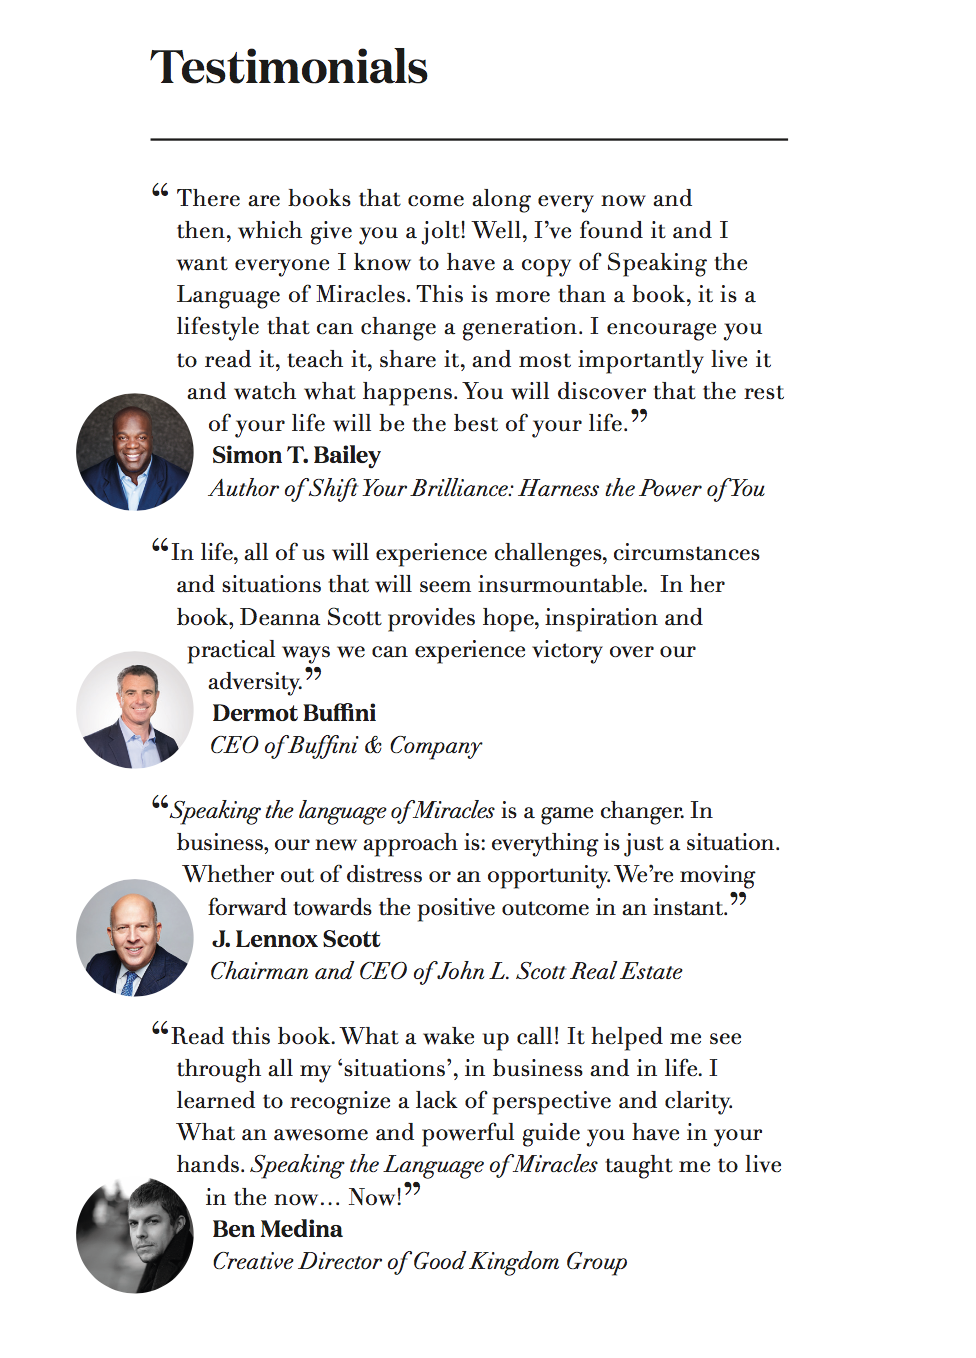 Testimonials from Book 01 (1).png